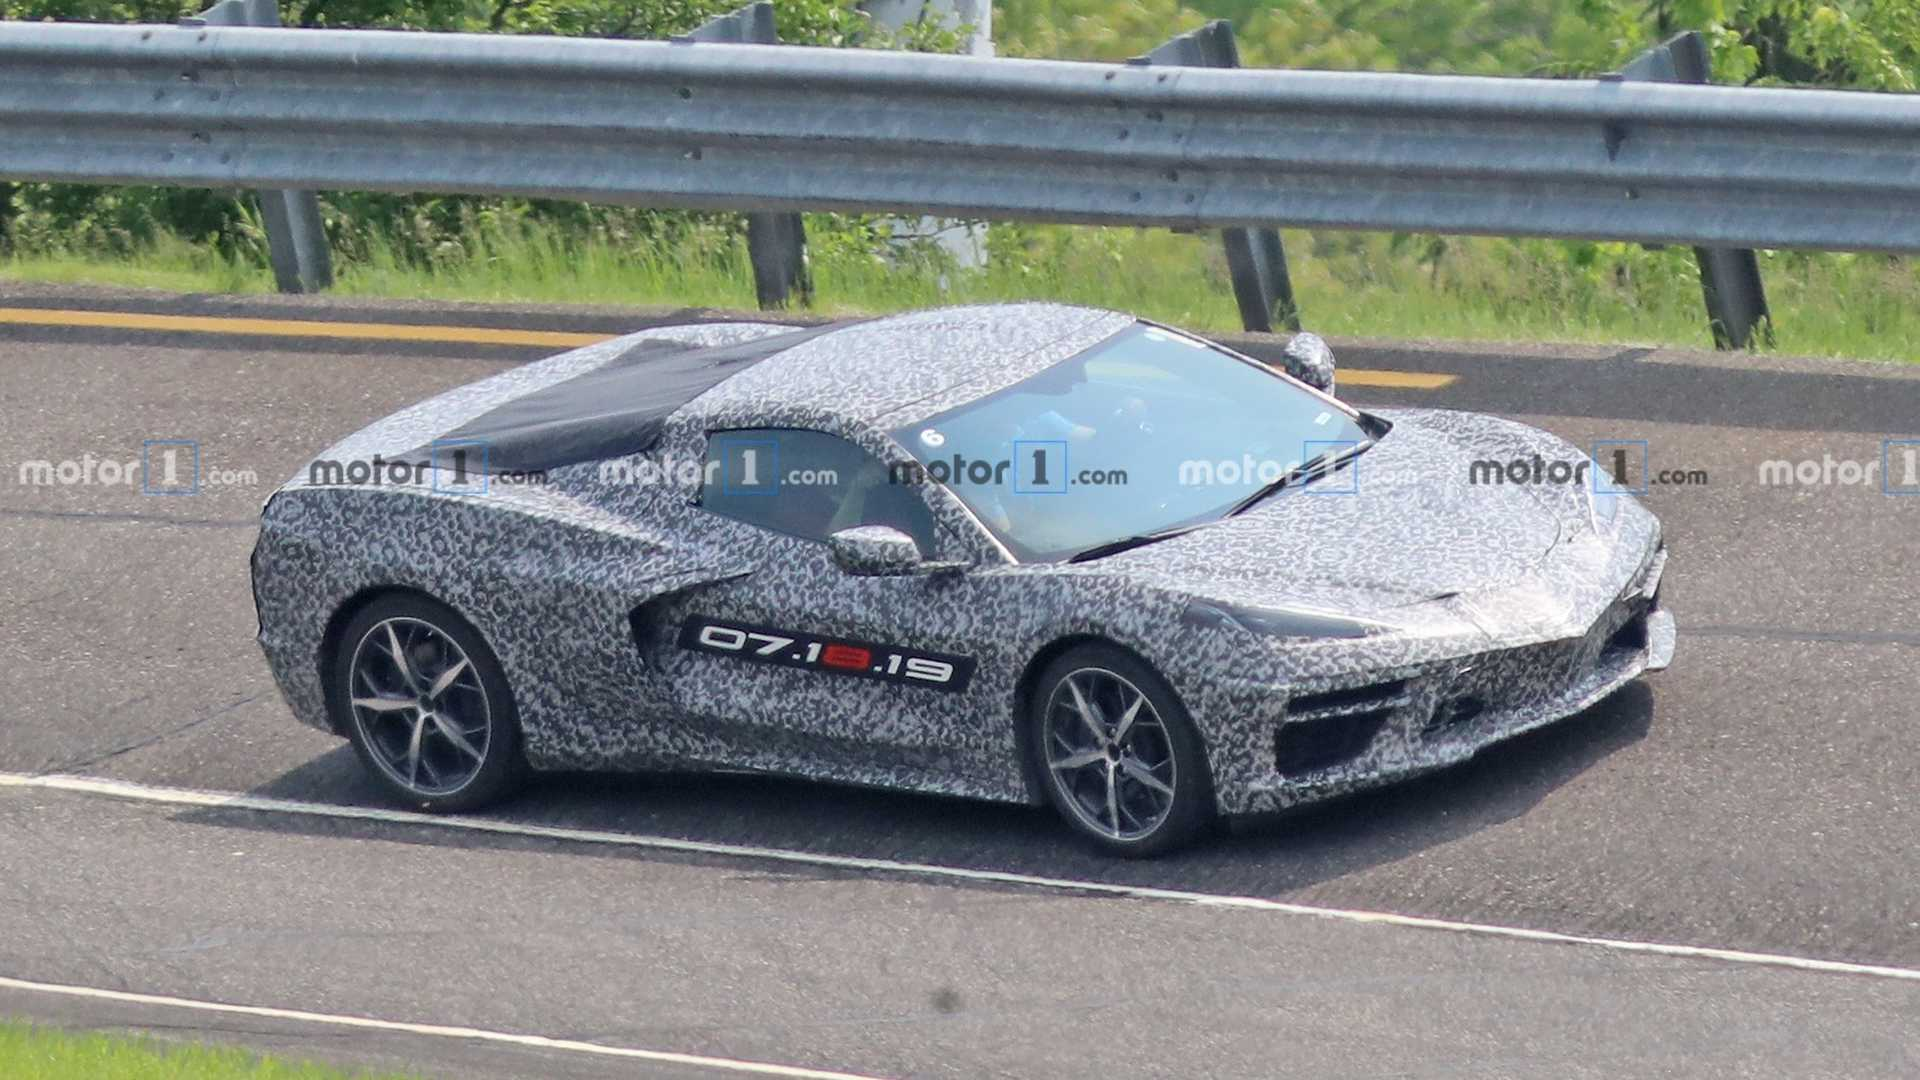 39 New 2020 Chevrolet Corvette Video Photos